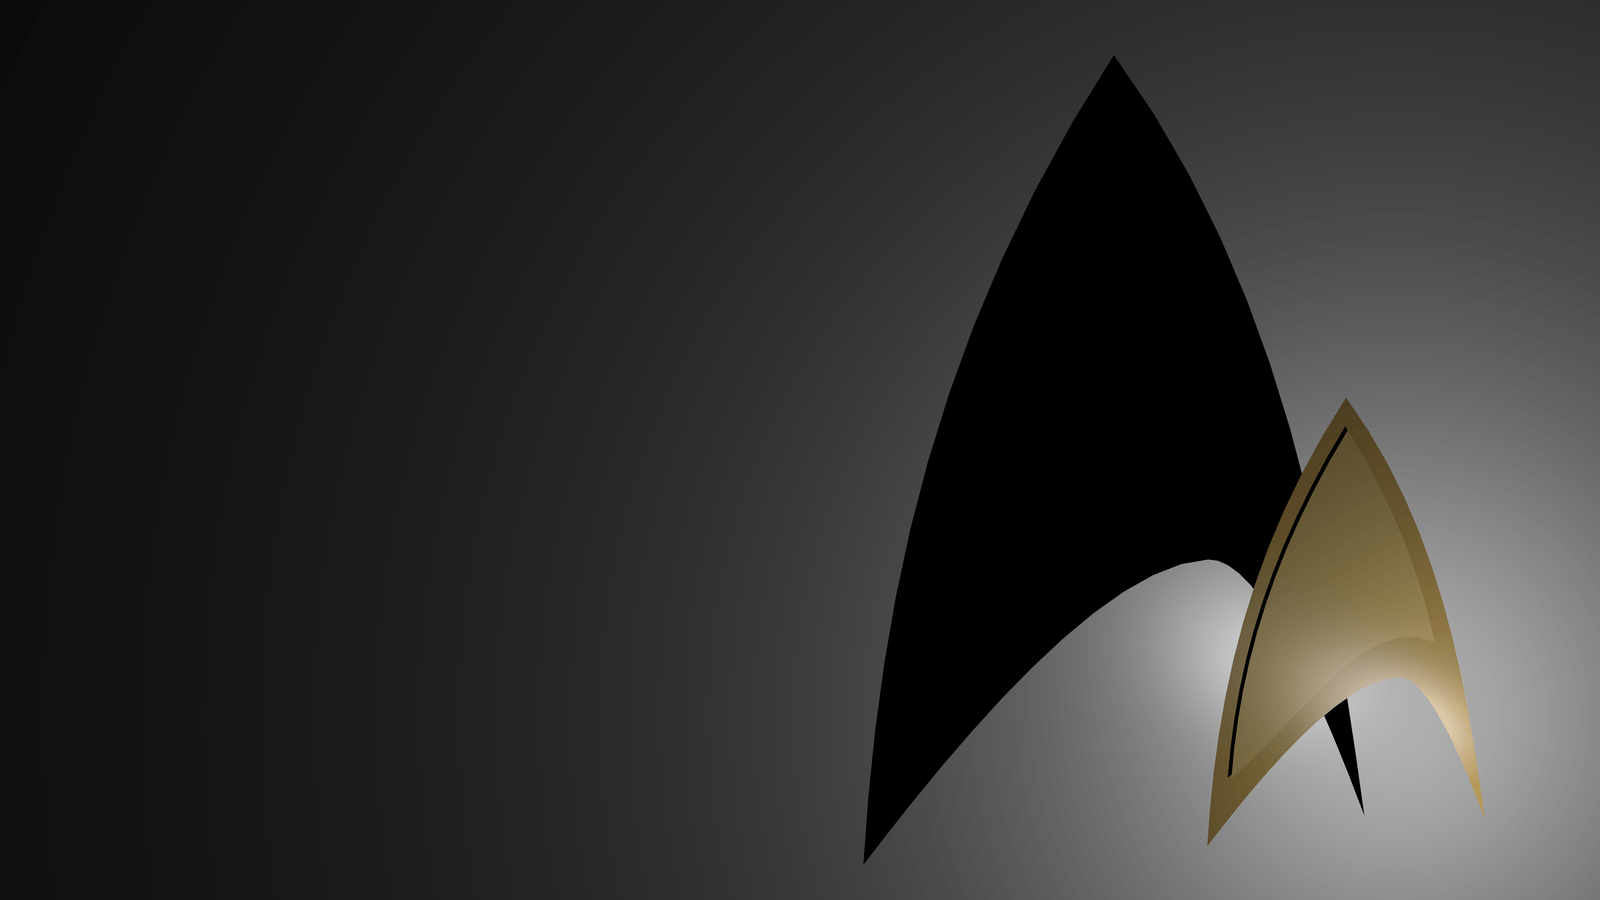 free star trek wallpaper